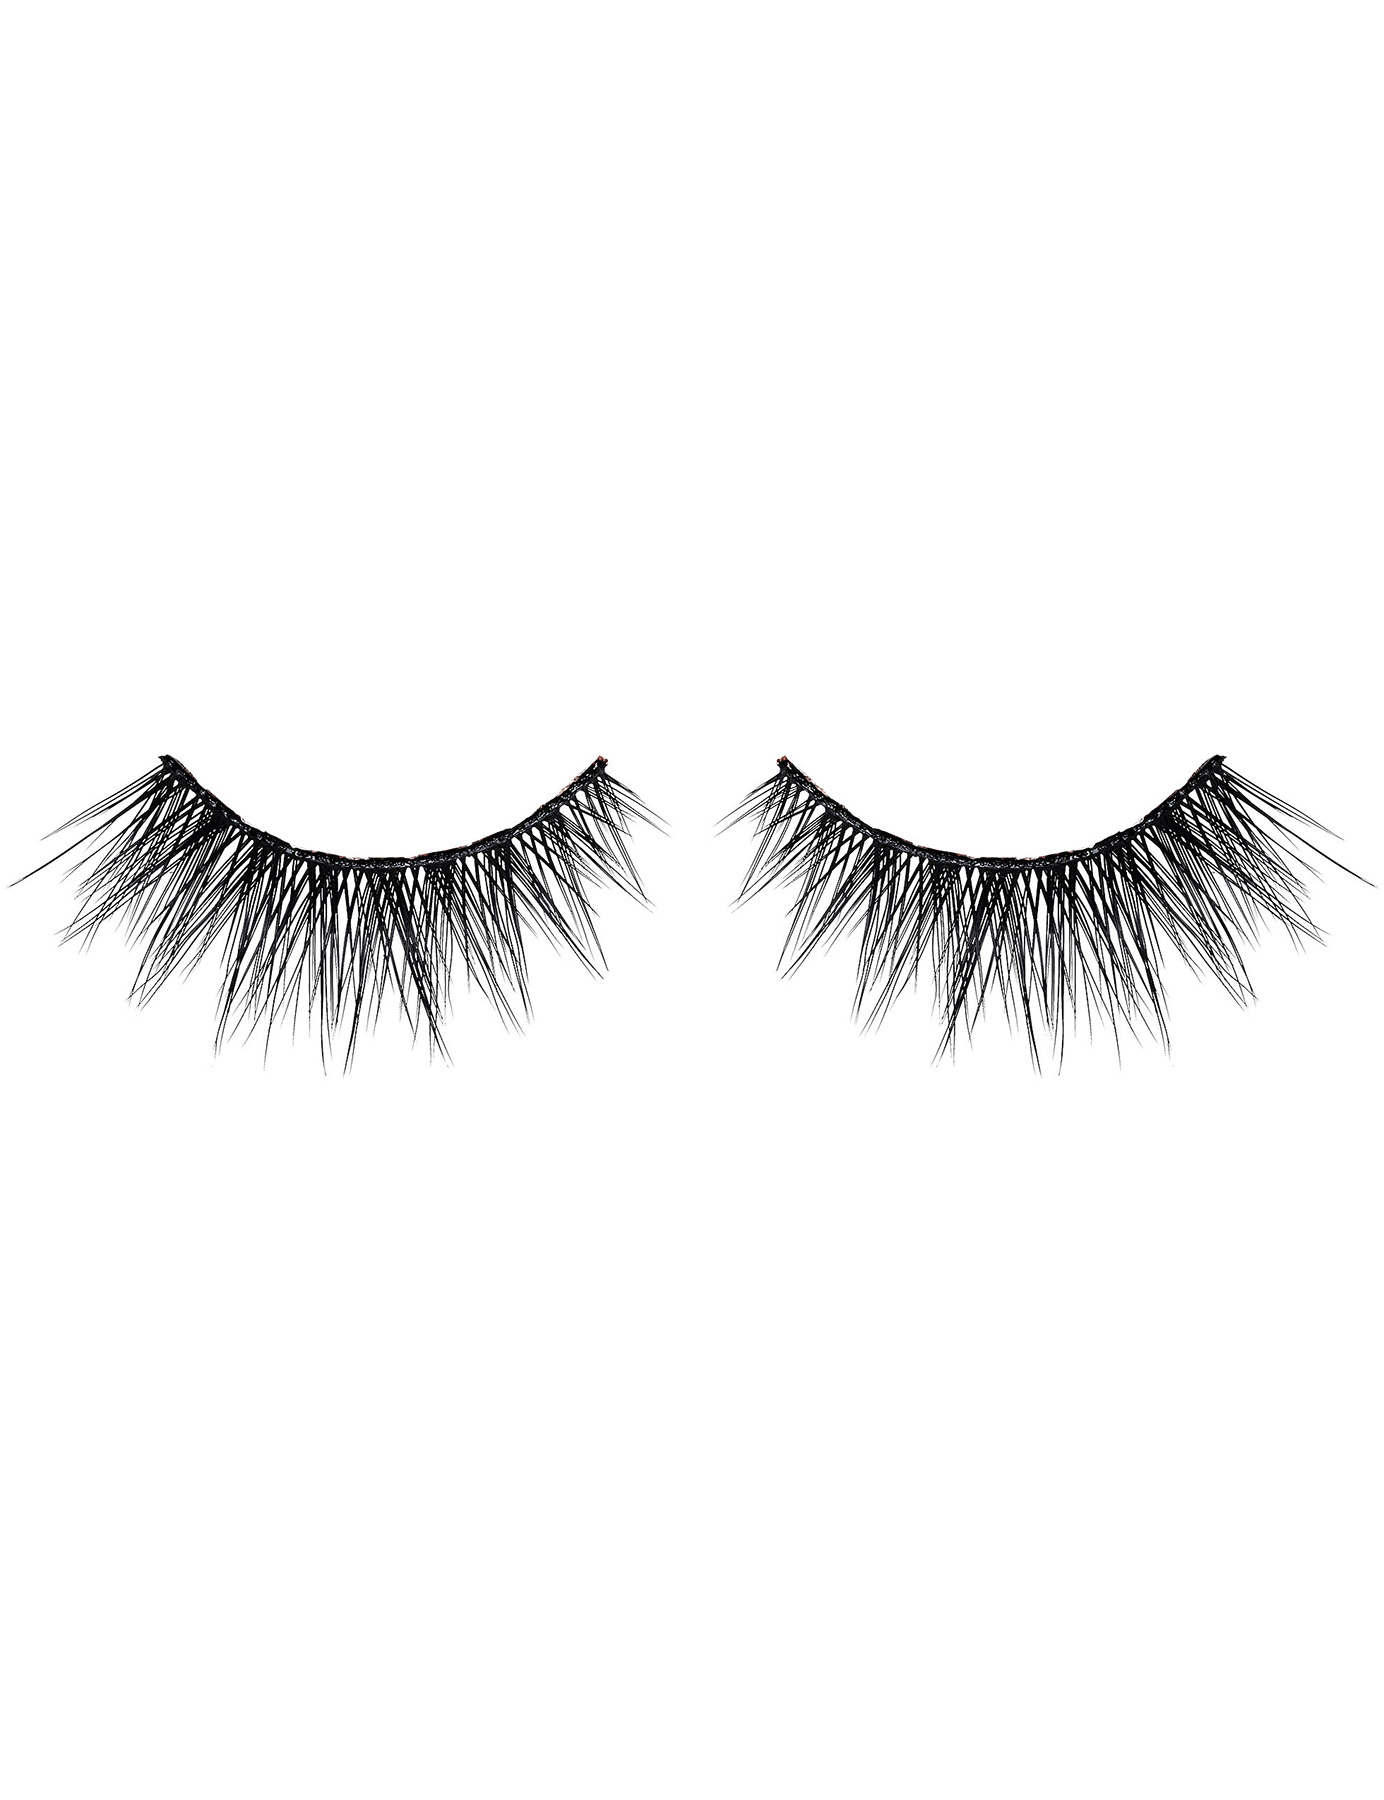 The Best False Eyelashes for Halloween Costumes